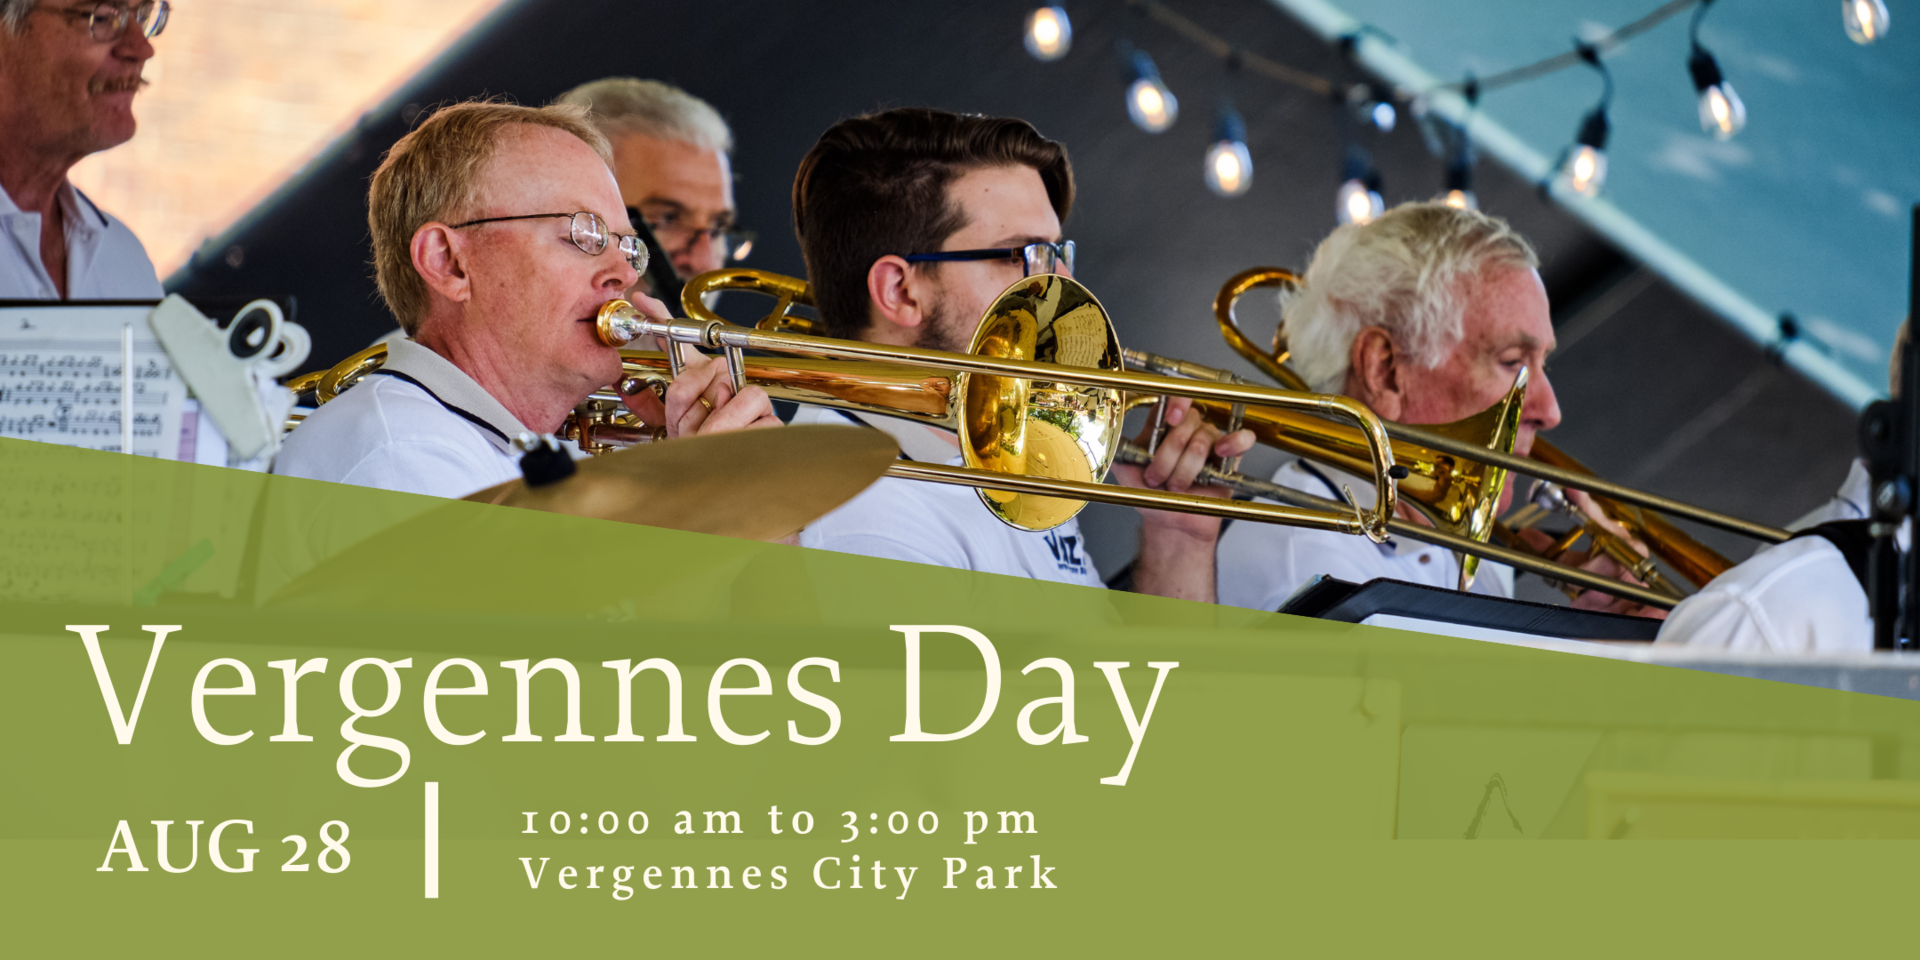 2021 39th Annual Vergennes Day